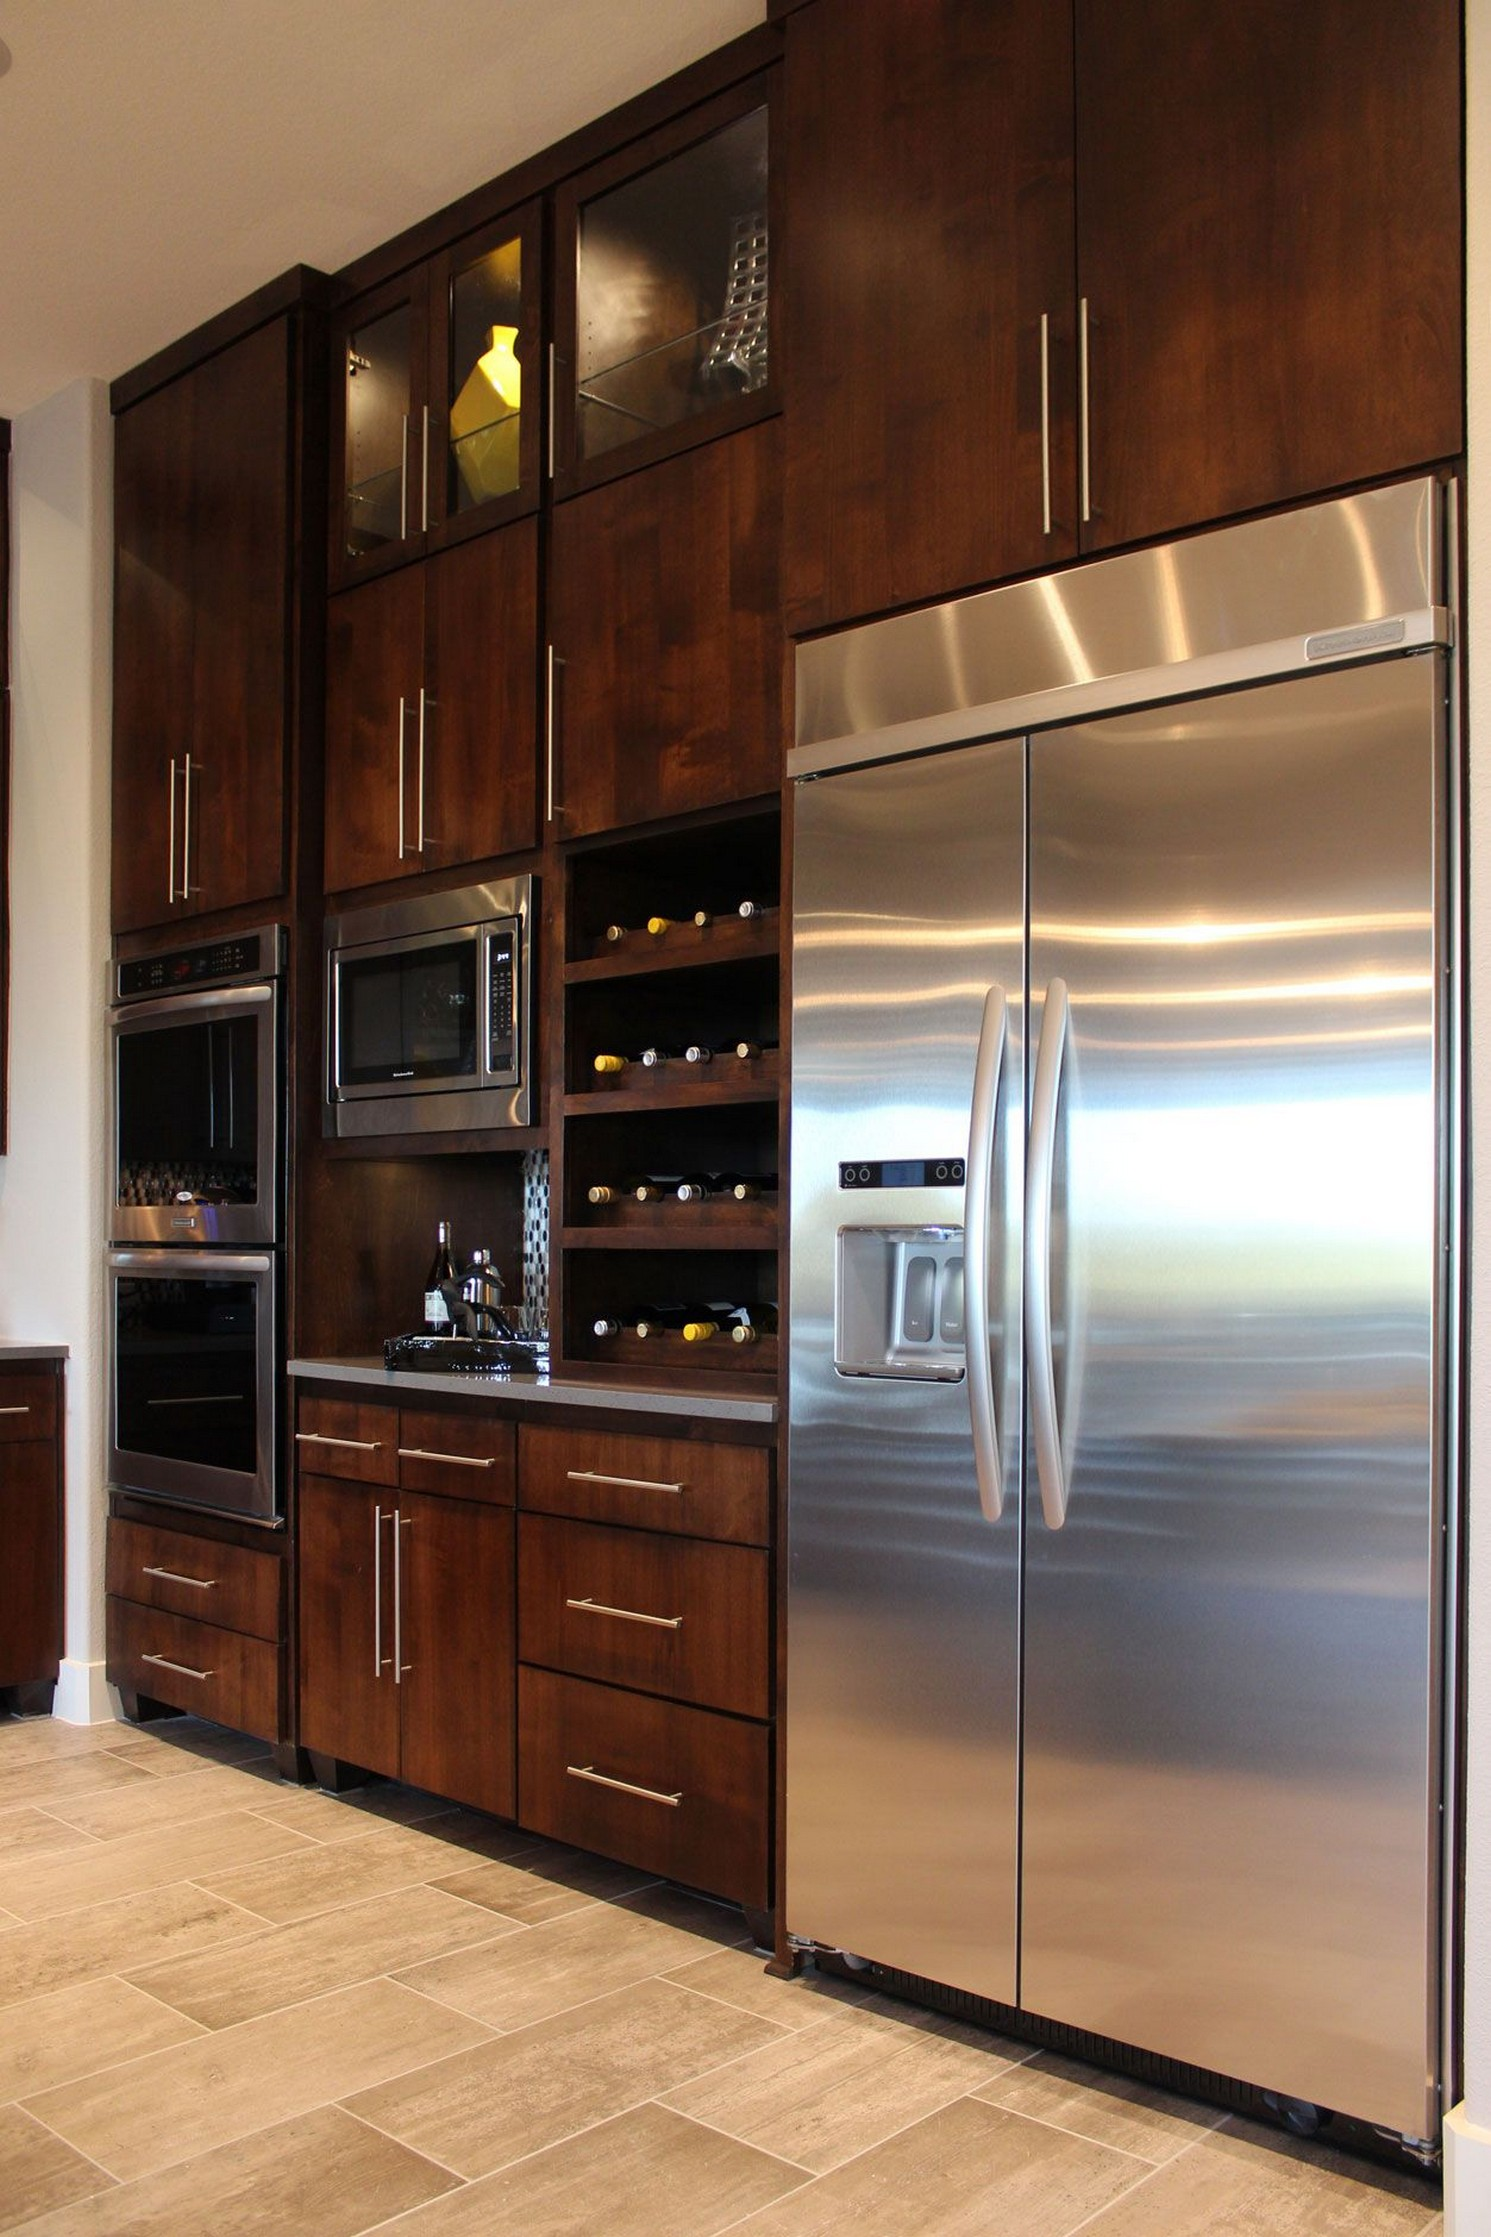 71 Painted Kitchen Cabinets Ideas For Home Decor 7